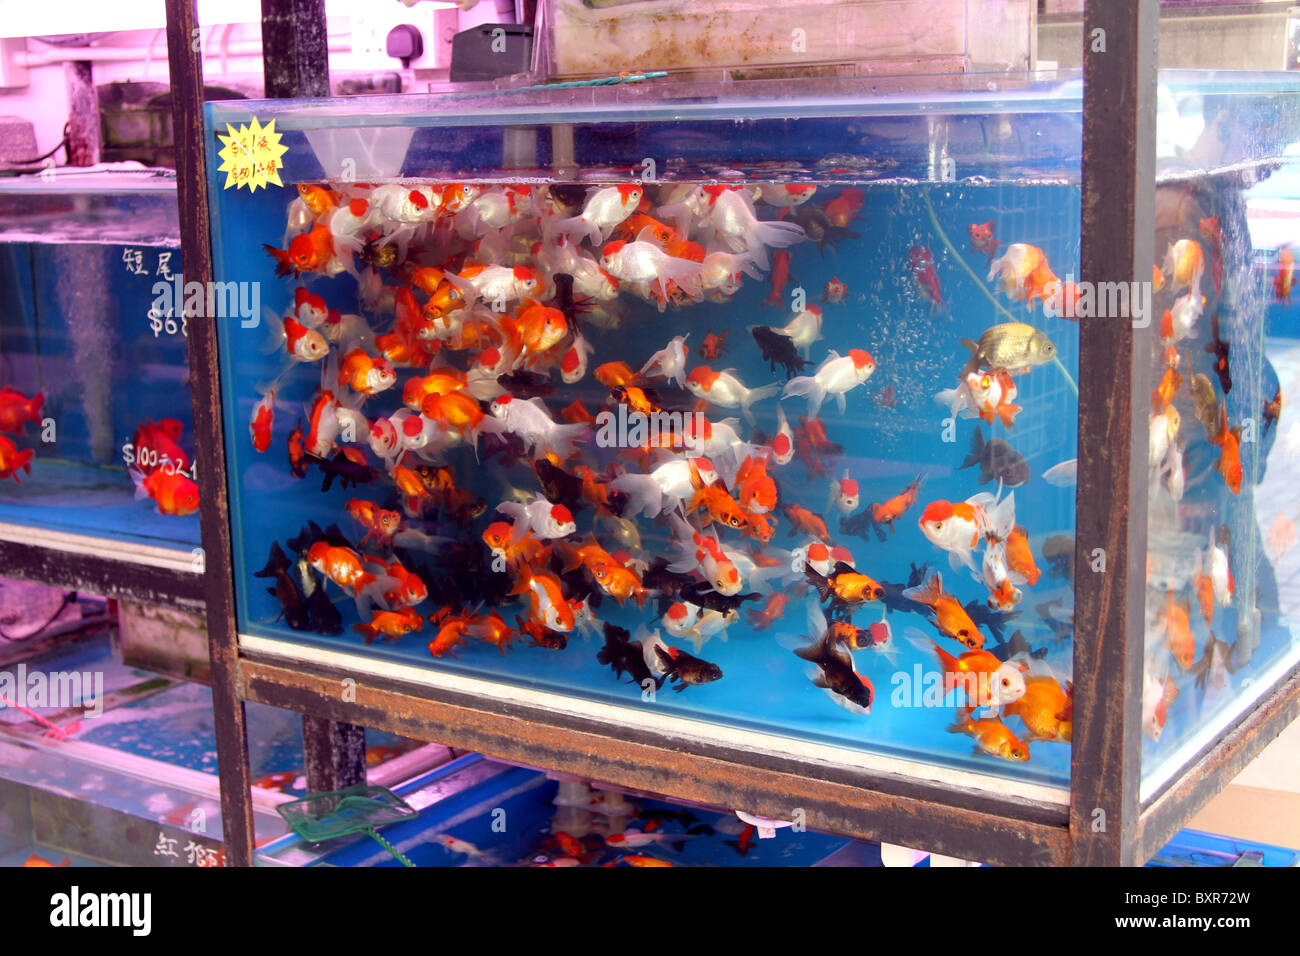 Aquarium pet shop selling goldfish in plastic bags in the for Fish and pet store